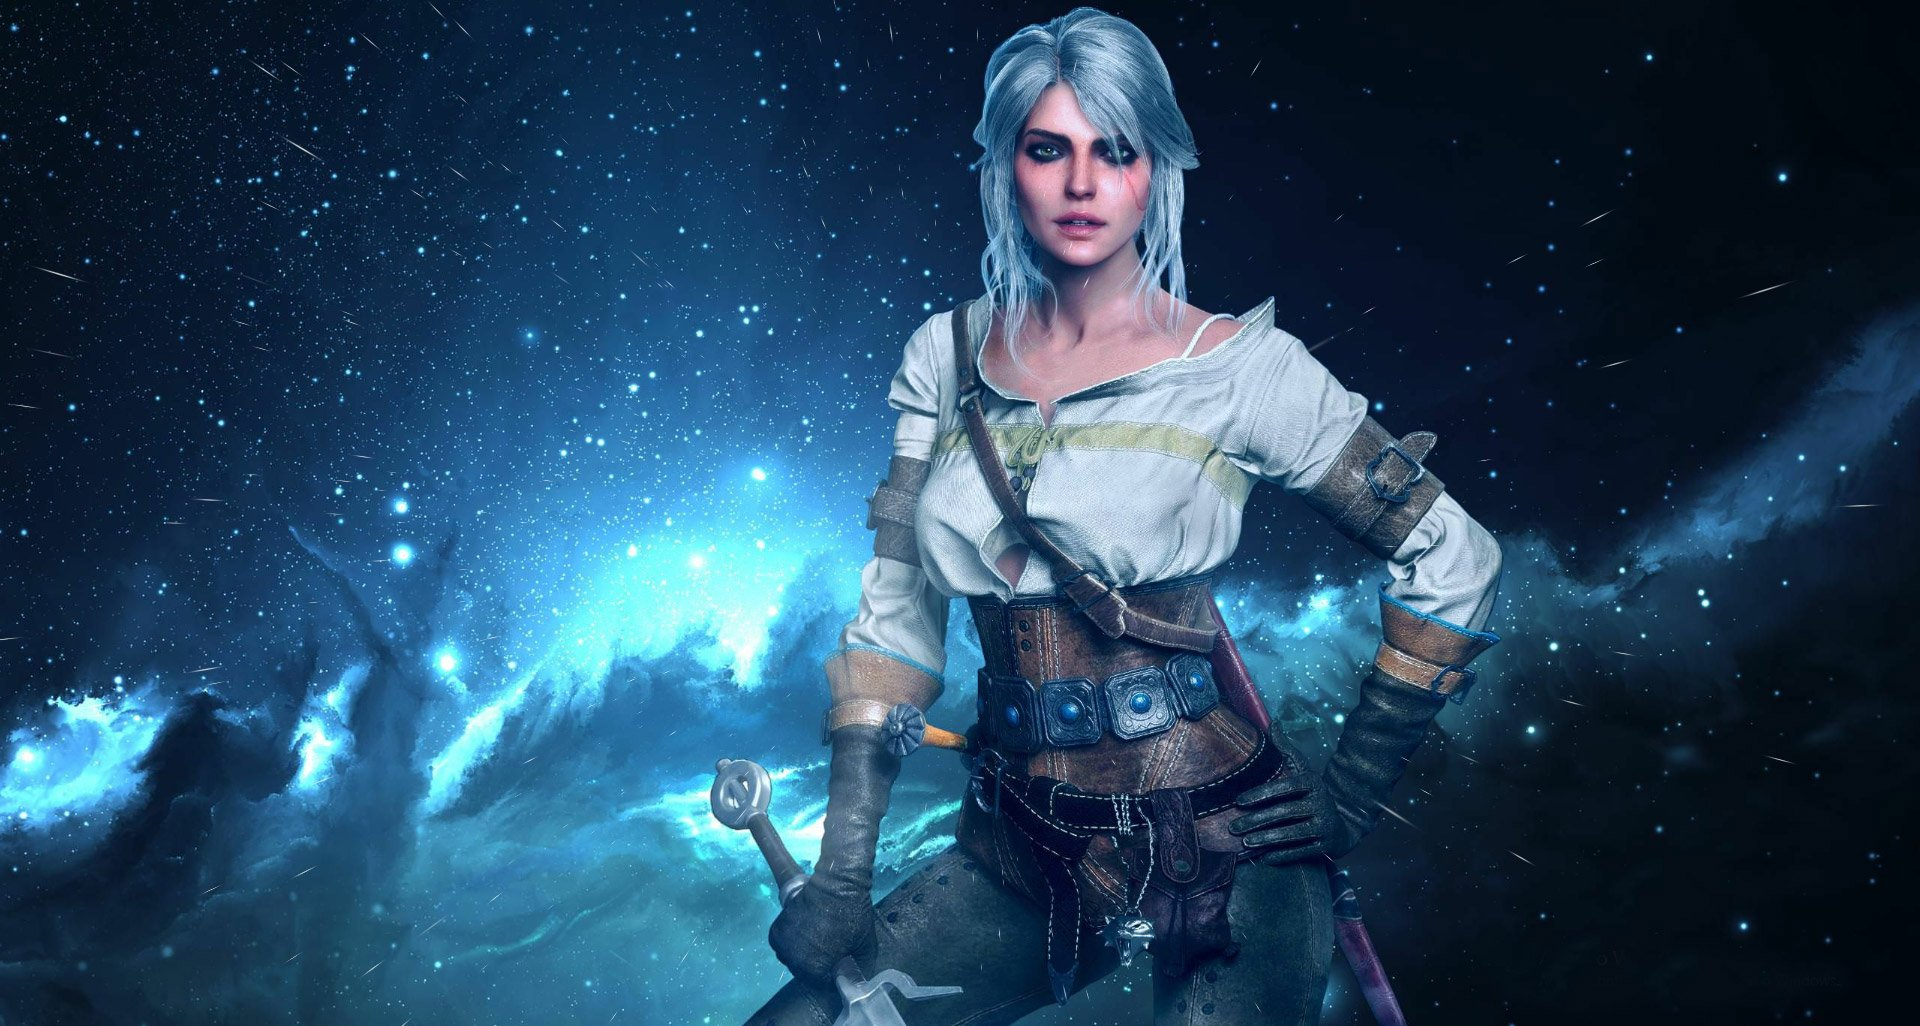 Free Download Ciri The Witcher 3 Animated Live Wallpaper 1920x1026 For Your Desktop Mobile Tablet Explore 40 Ciri Wallpaper Ciri Wallpaper